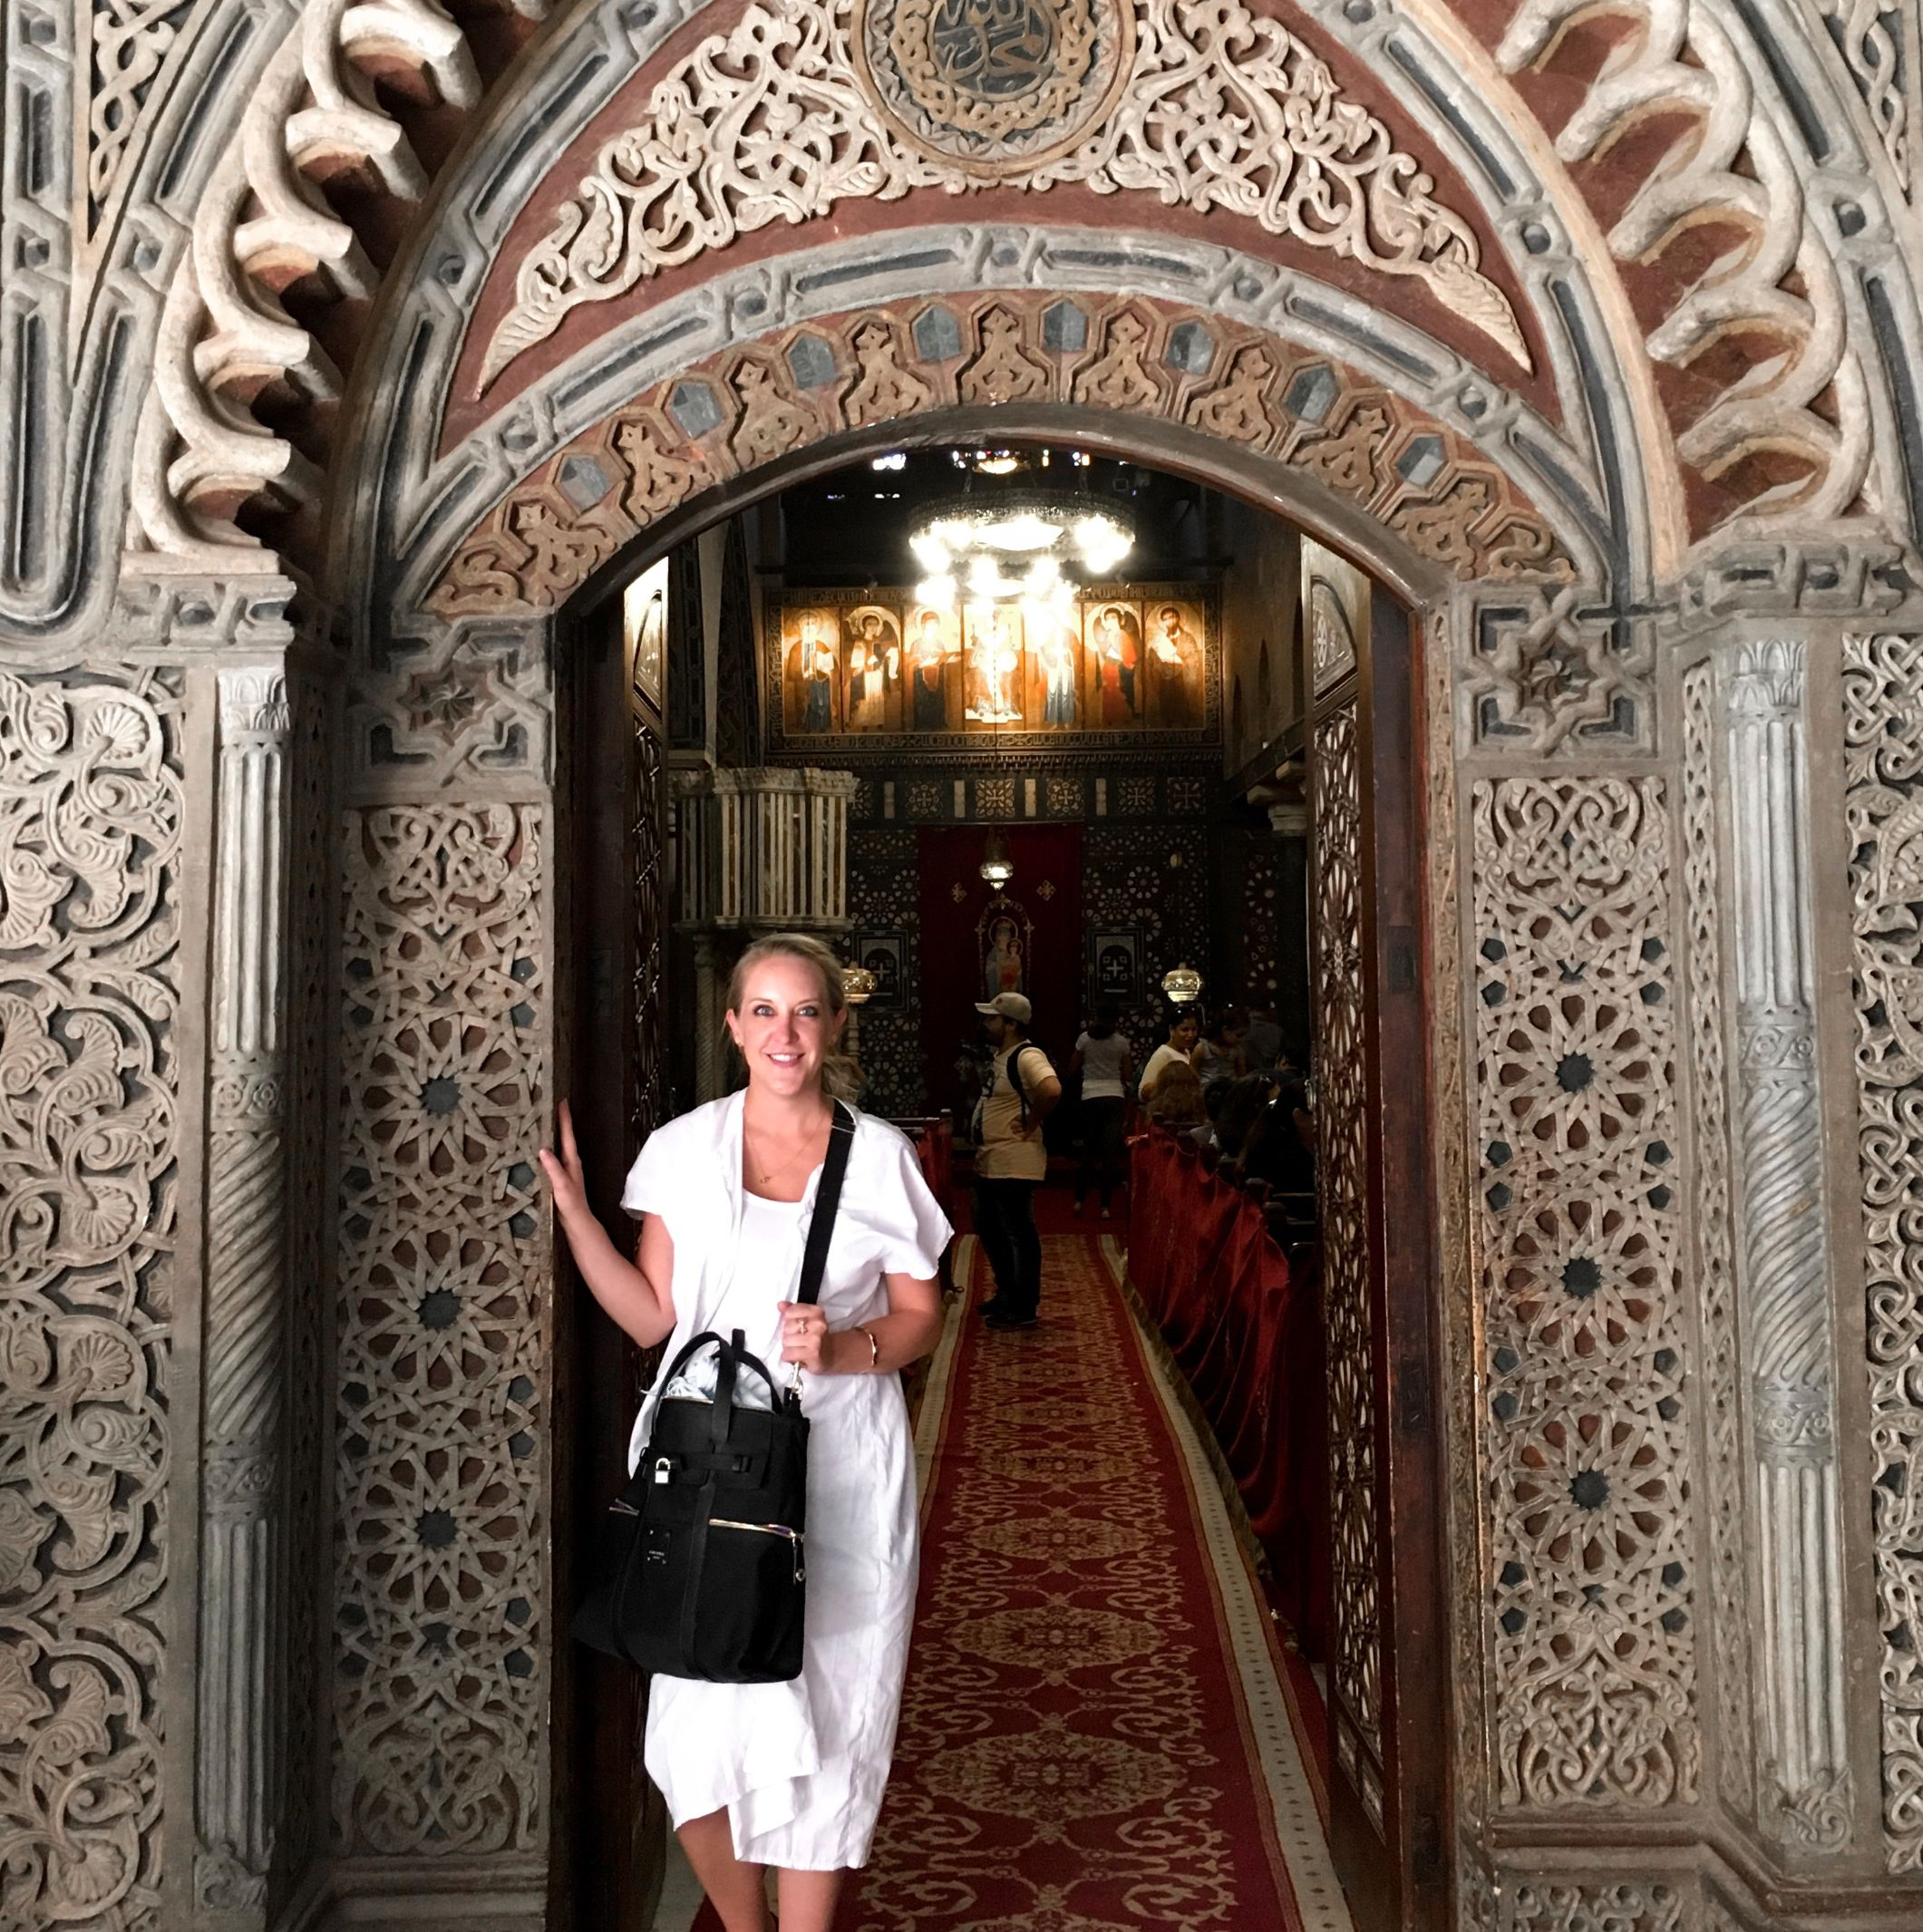 Anuket Luxury Apothecary founder Ashlee Dozier at The Hanging Church in Cairo, Egypt